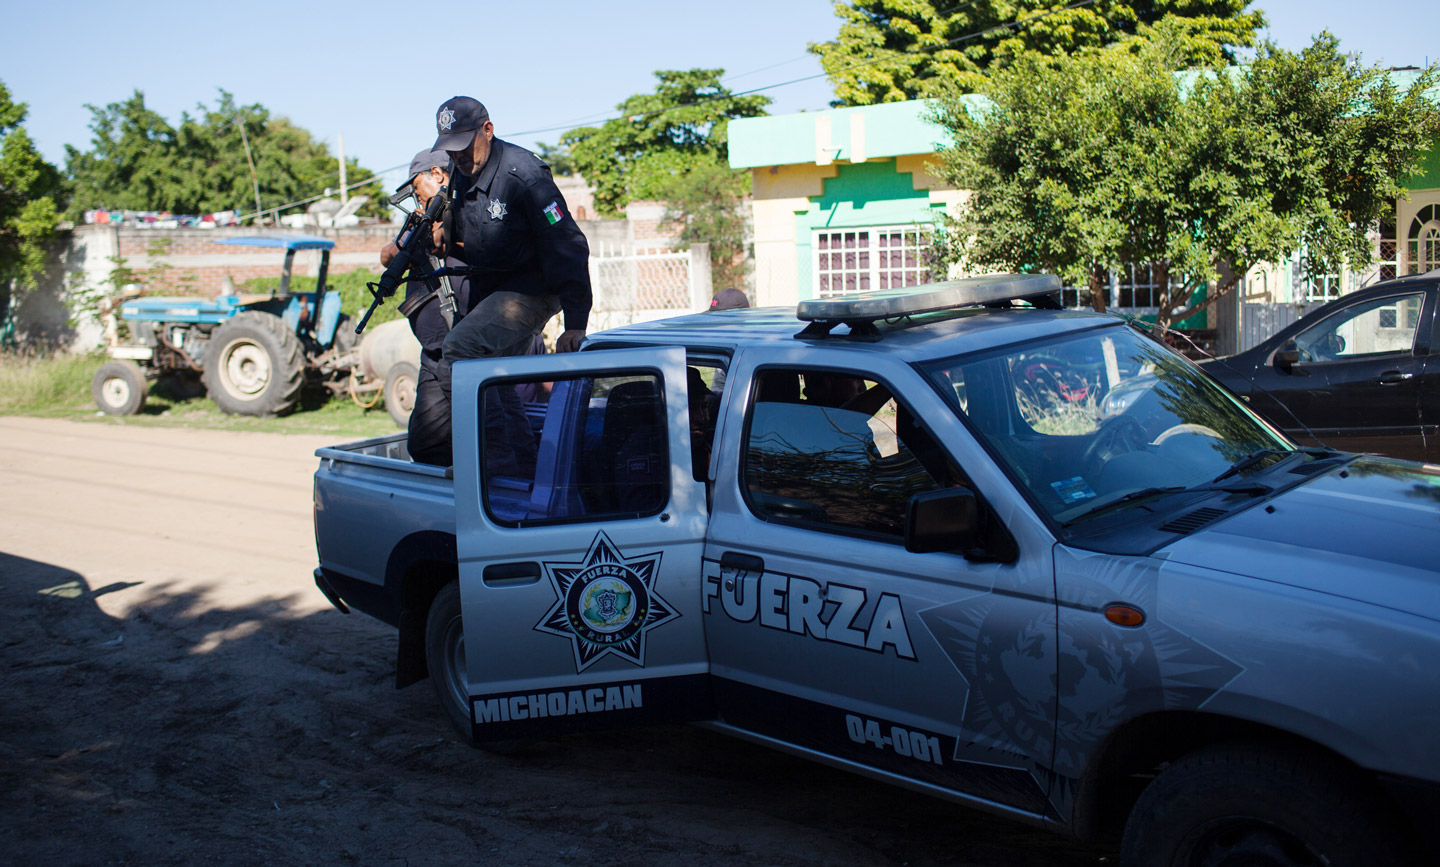 Members of the Fuerza Rural, more specifically a group lead by Hipolito Mora, get out of a truck in front of Mora's house, in La Ruana, Michoacán, Mexico, Tuesday, December 15, 2015. Hipolito Mora was one of the original founder of the autodefensa movement, which saw vigilantes spread across the state of Michoacán and drive out the cartel group the 'Knights of Templar'. Since the uprising began in 2013, other criminal groups have filled the space of the previous cartel and many look at the autodefensa movement as a failure. Mora has had many challenges over the last three years, including being sent to jail twice and having his son killed in a shootout Dec. 16, 2014 during a shootout with a rival group. (Brett Gundlock/Boreal Collective)